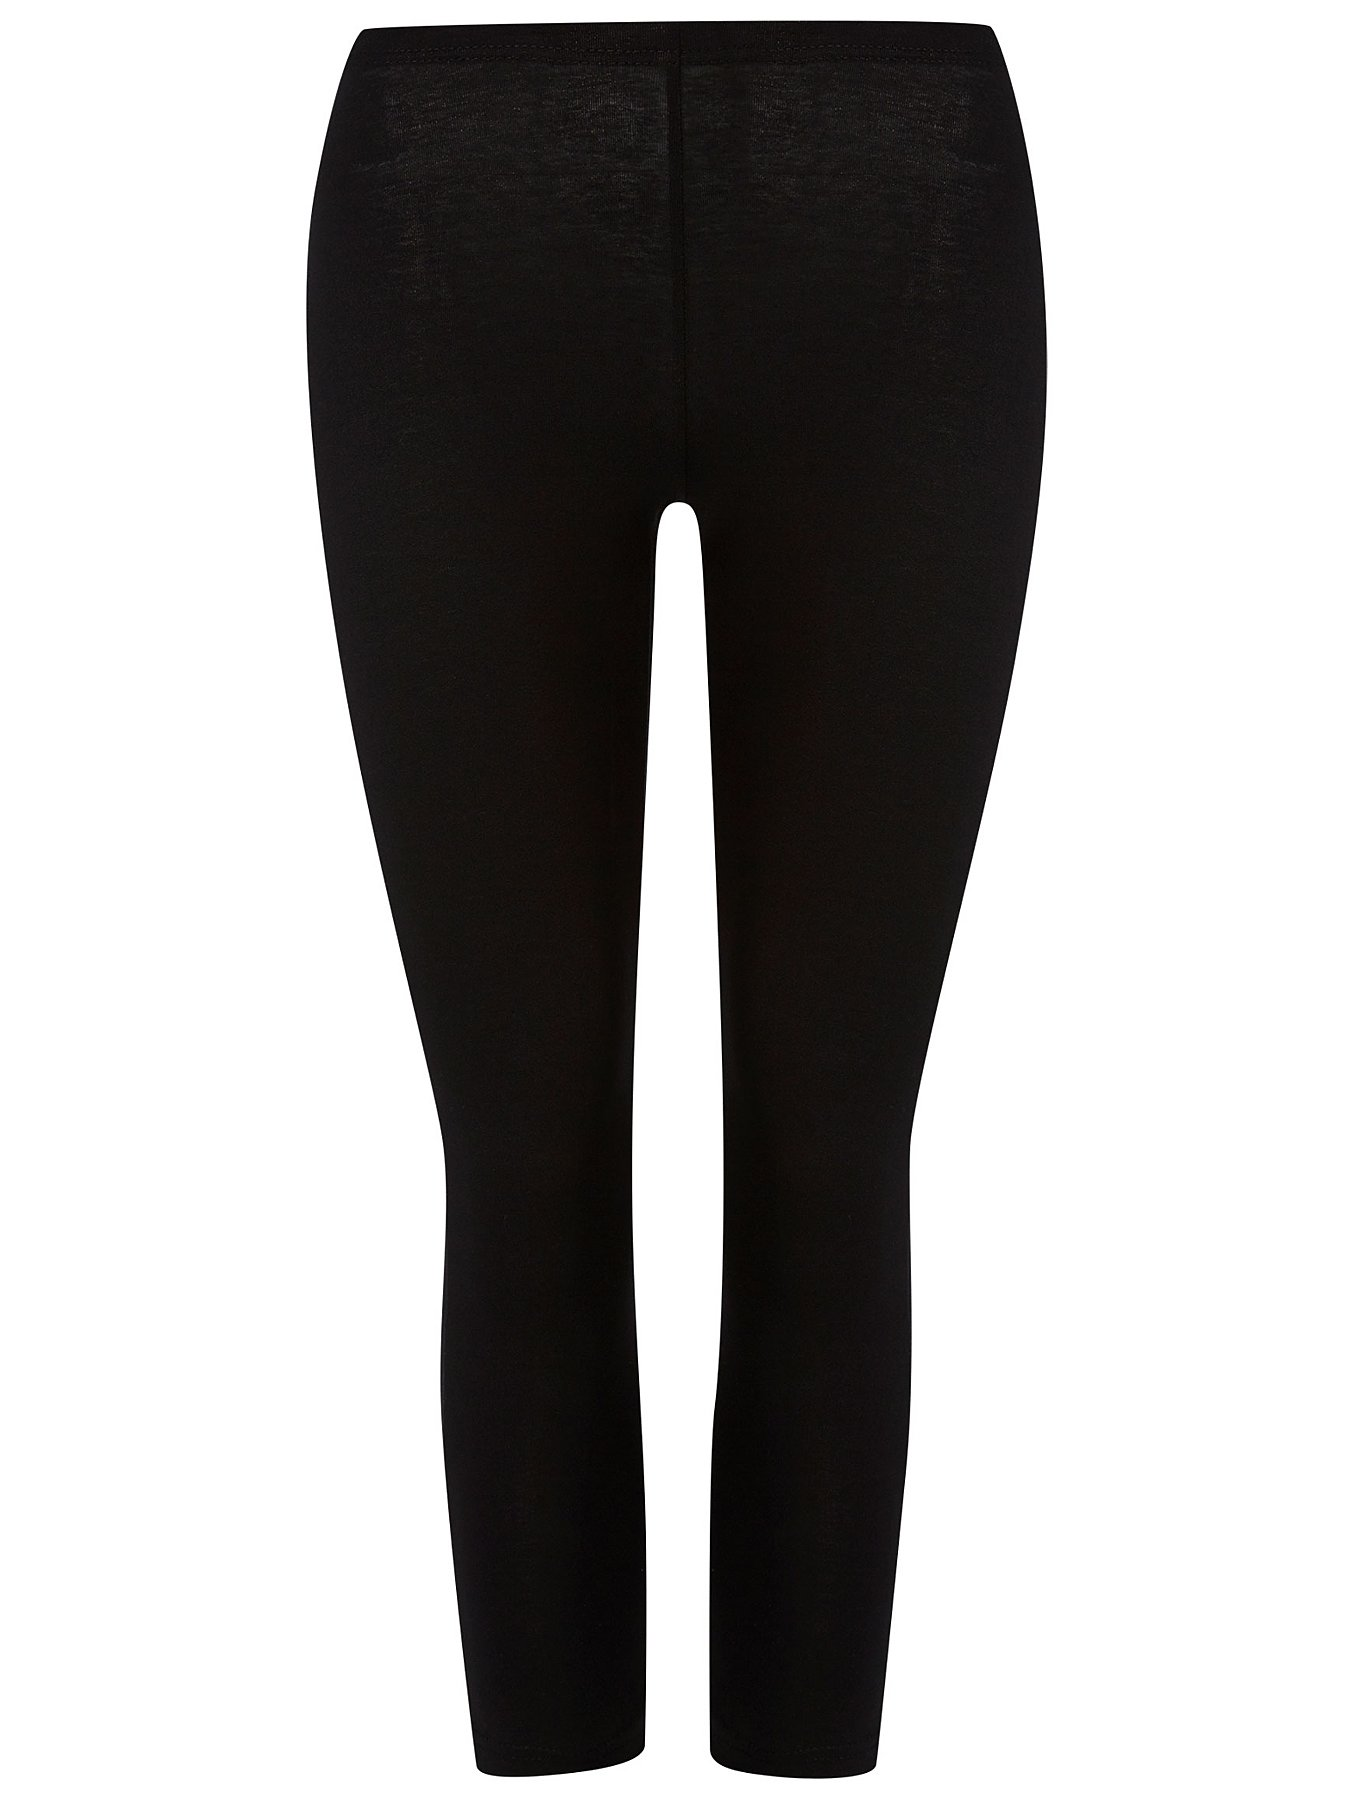 dc548911460f33 Black Crop Leg Leggings 2 Pack | Women | George